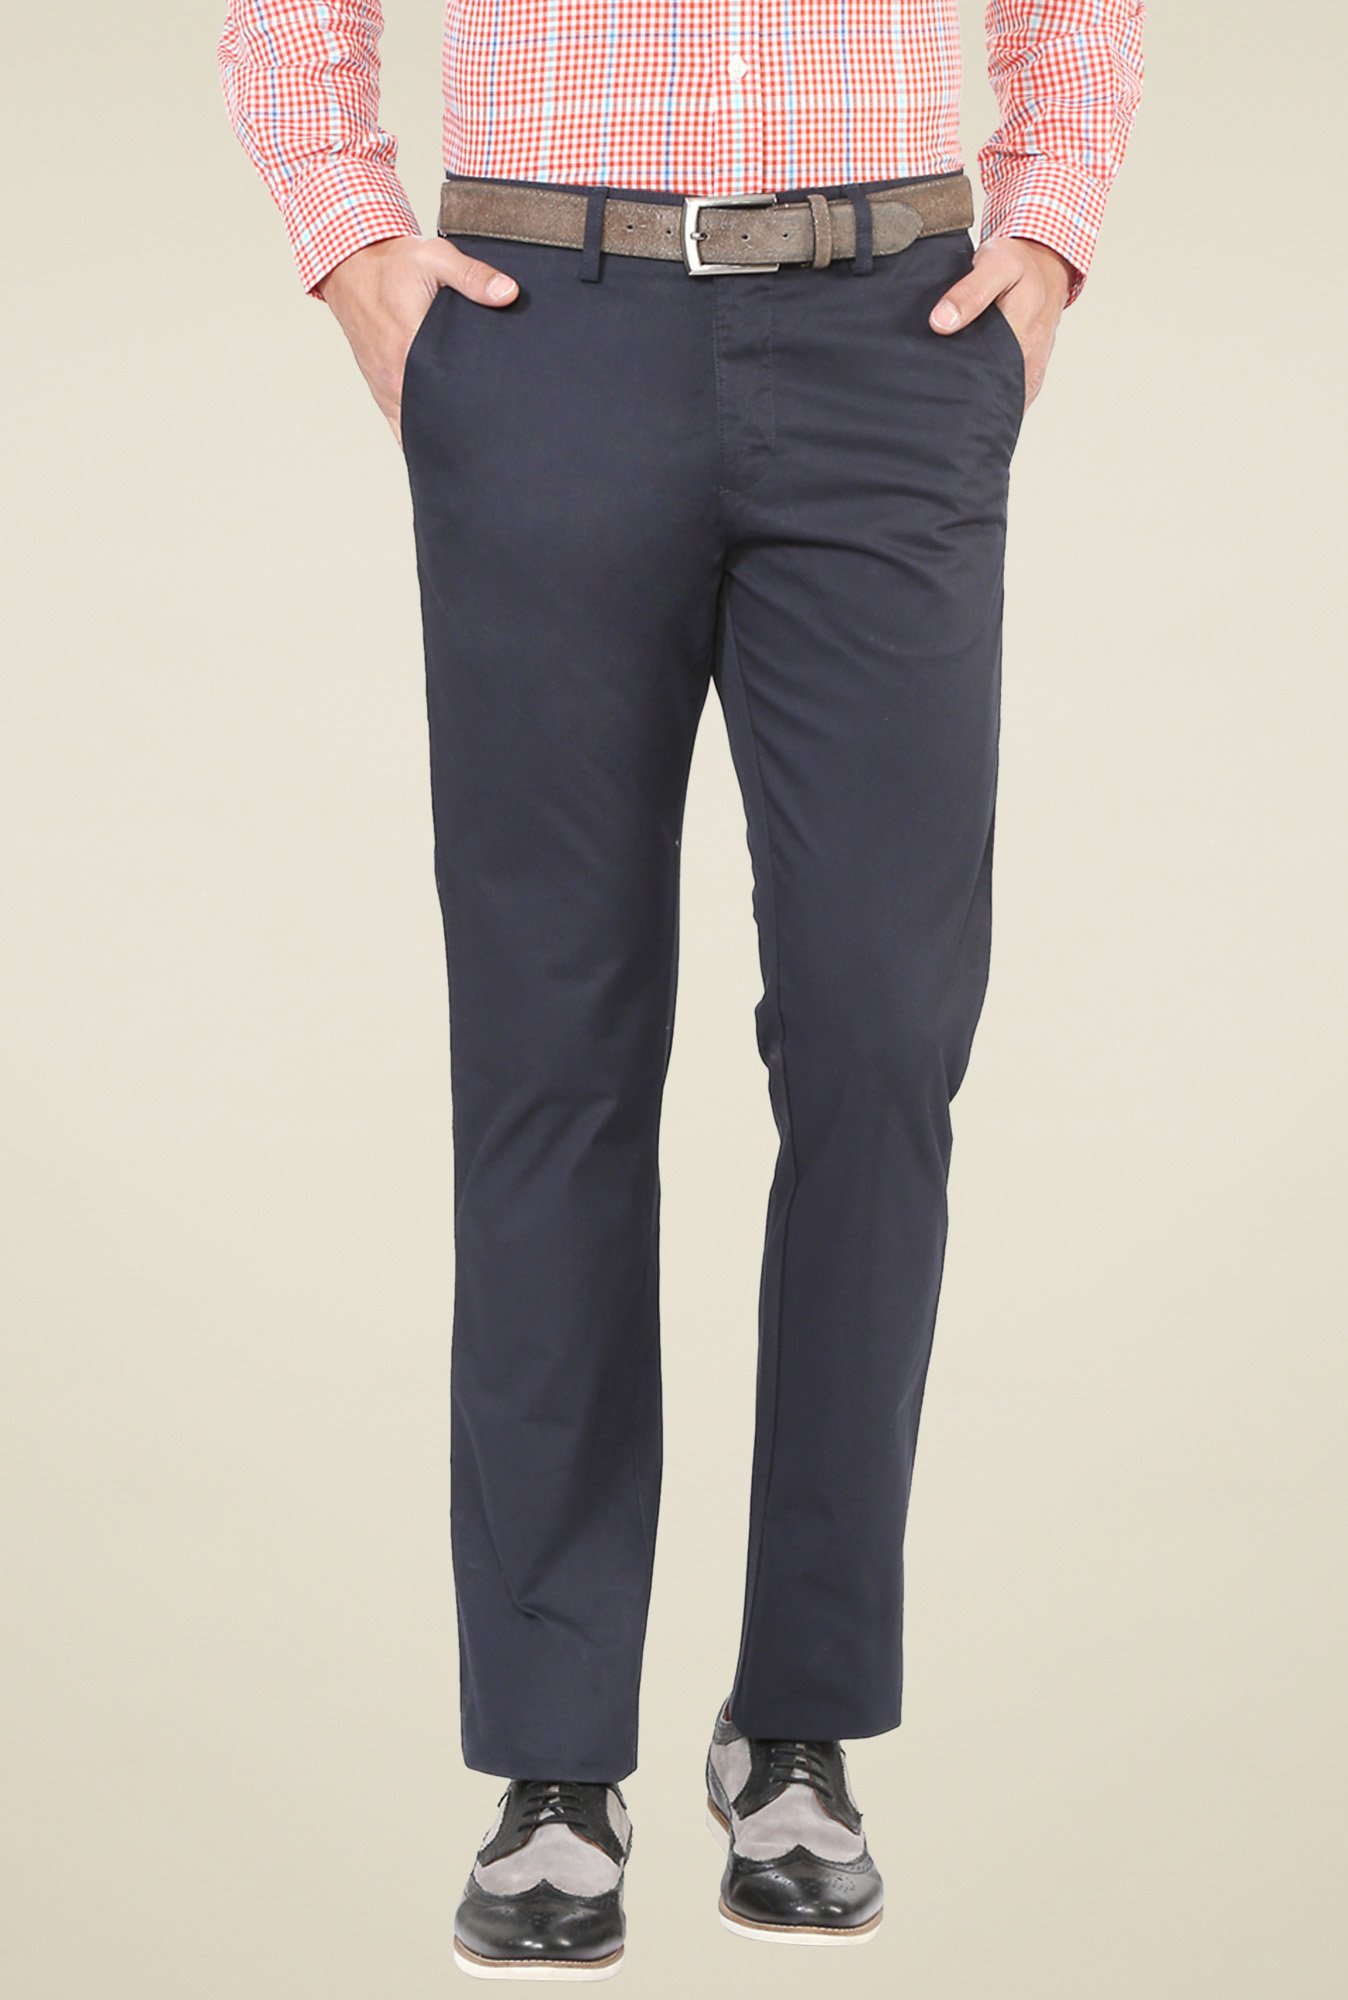 Allen Solly Navy Ultra Slim Fit Trousers